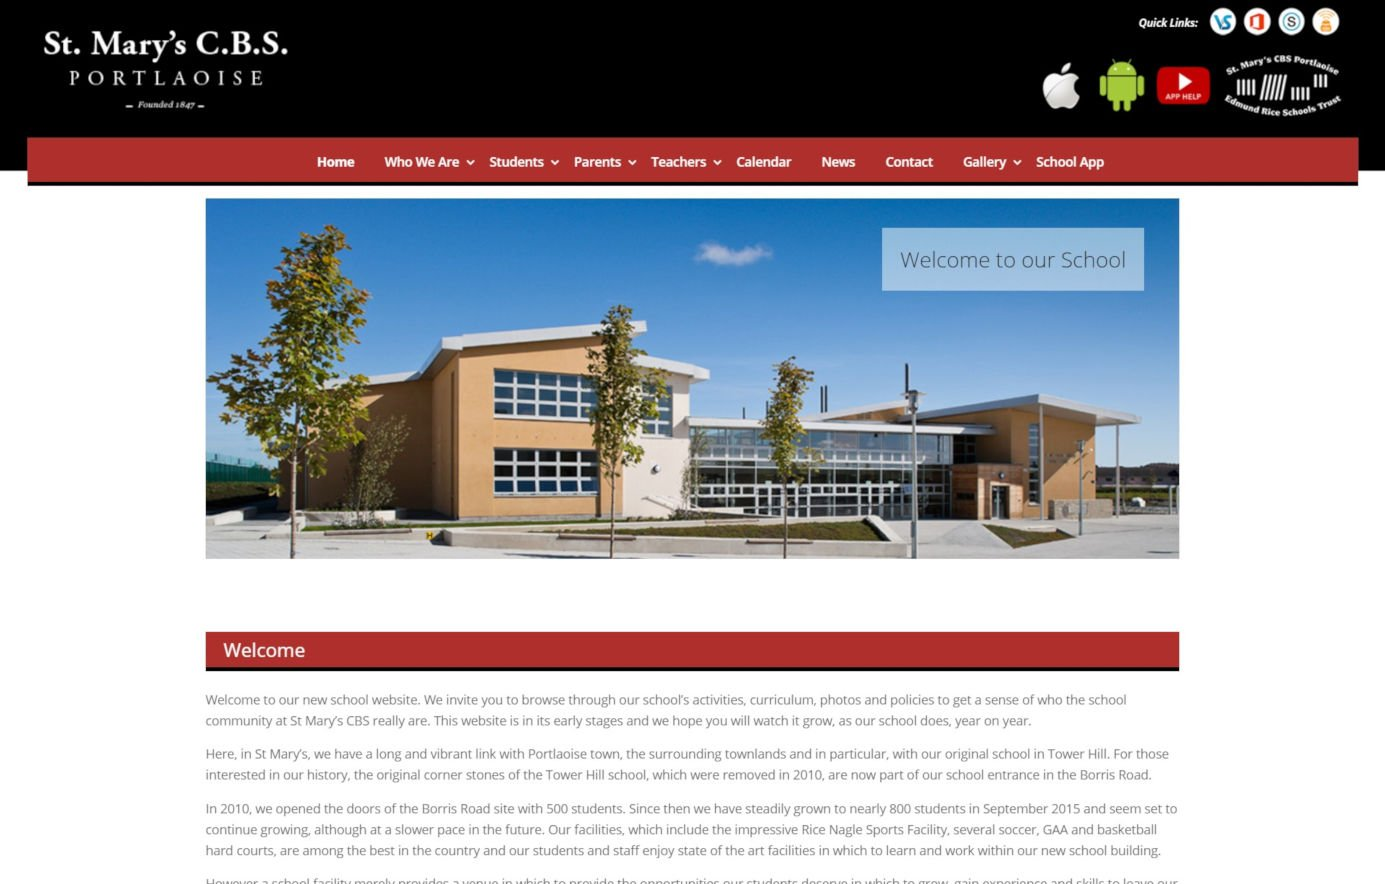 St. Mary's CBS, Portlaoise - School Website Design - Featured